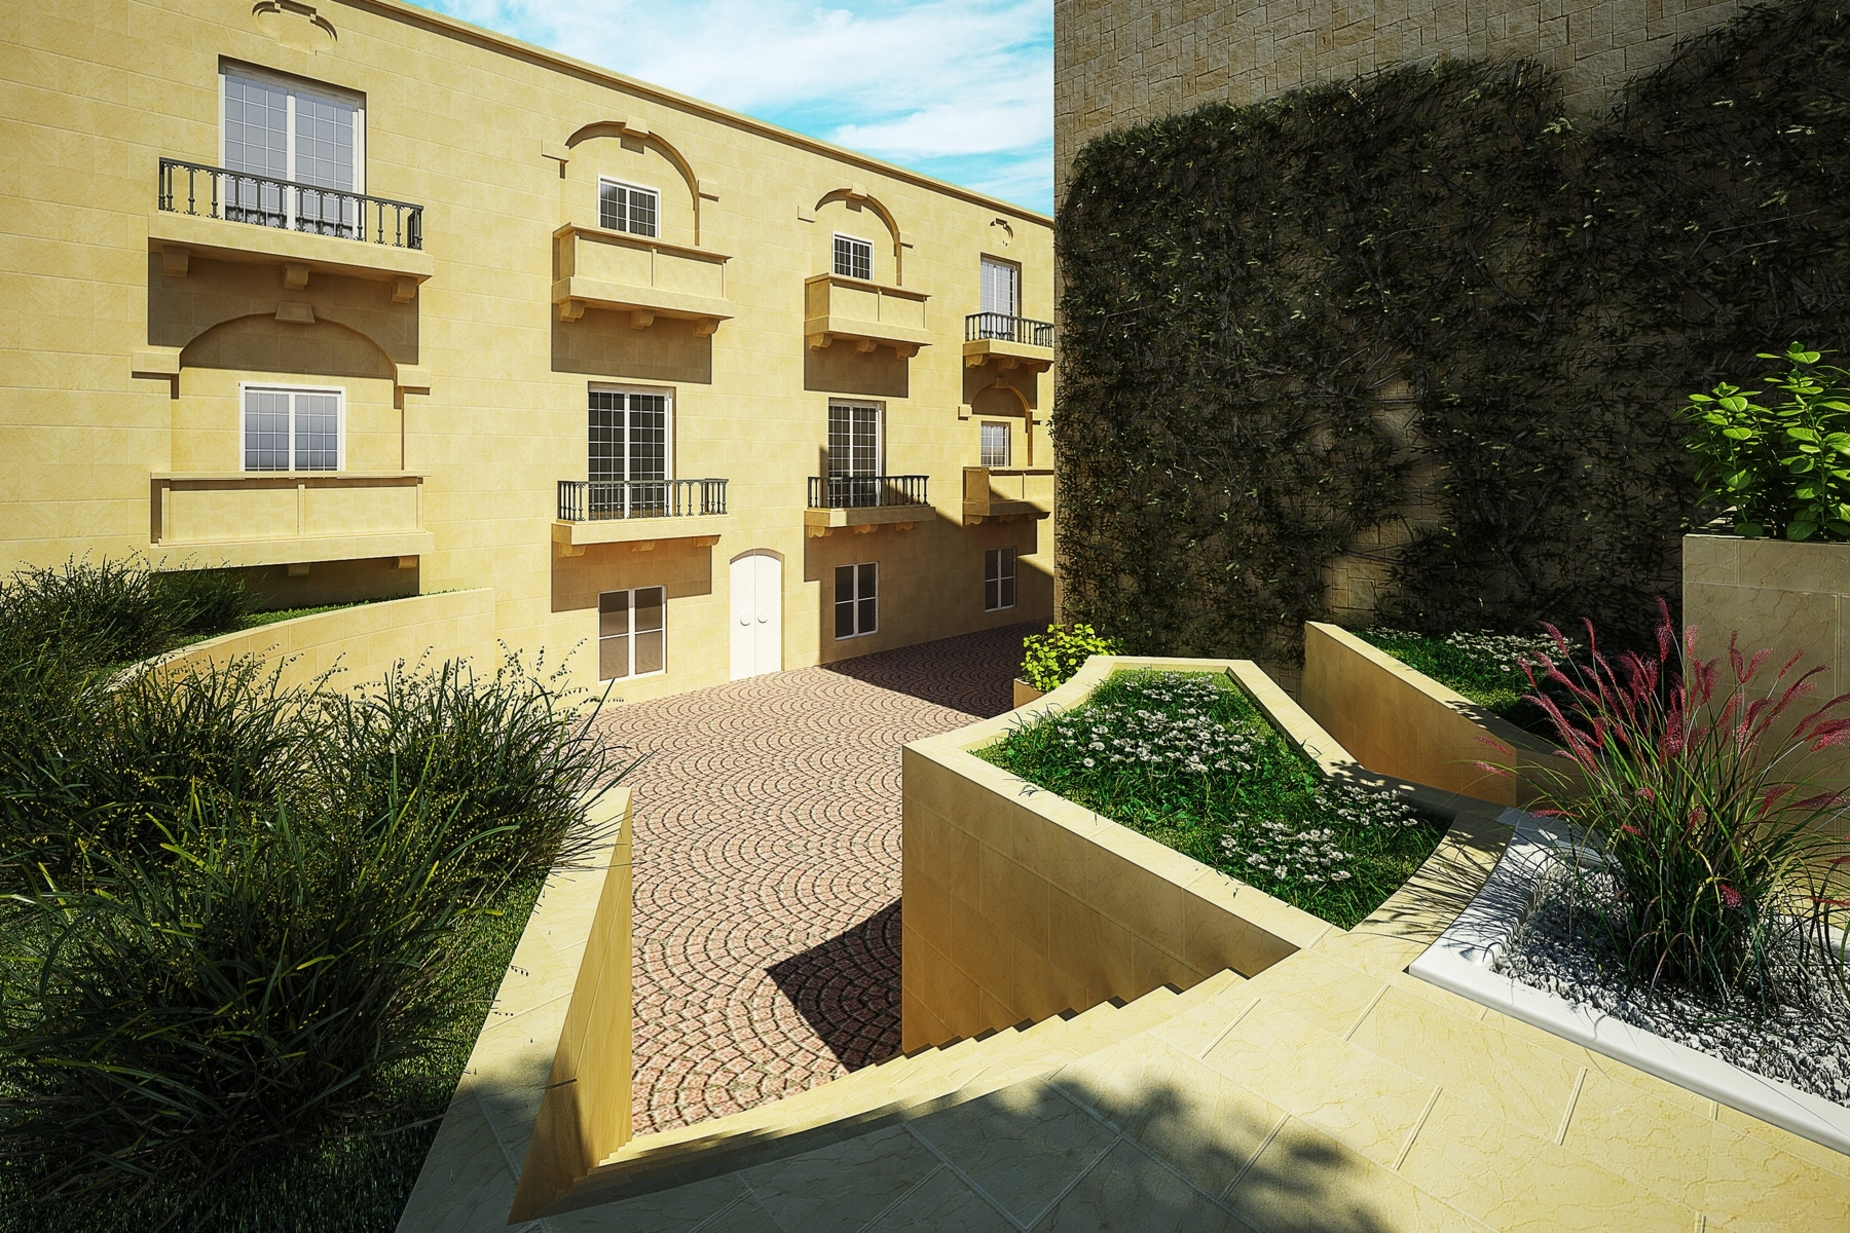 4 bed Maisonette For Sale in Xaghra, Xaghra - thumb 3